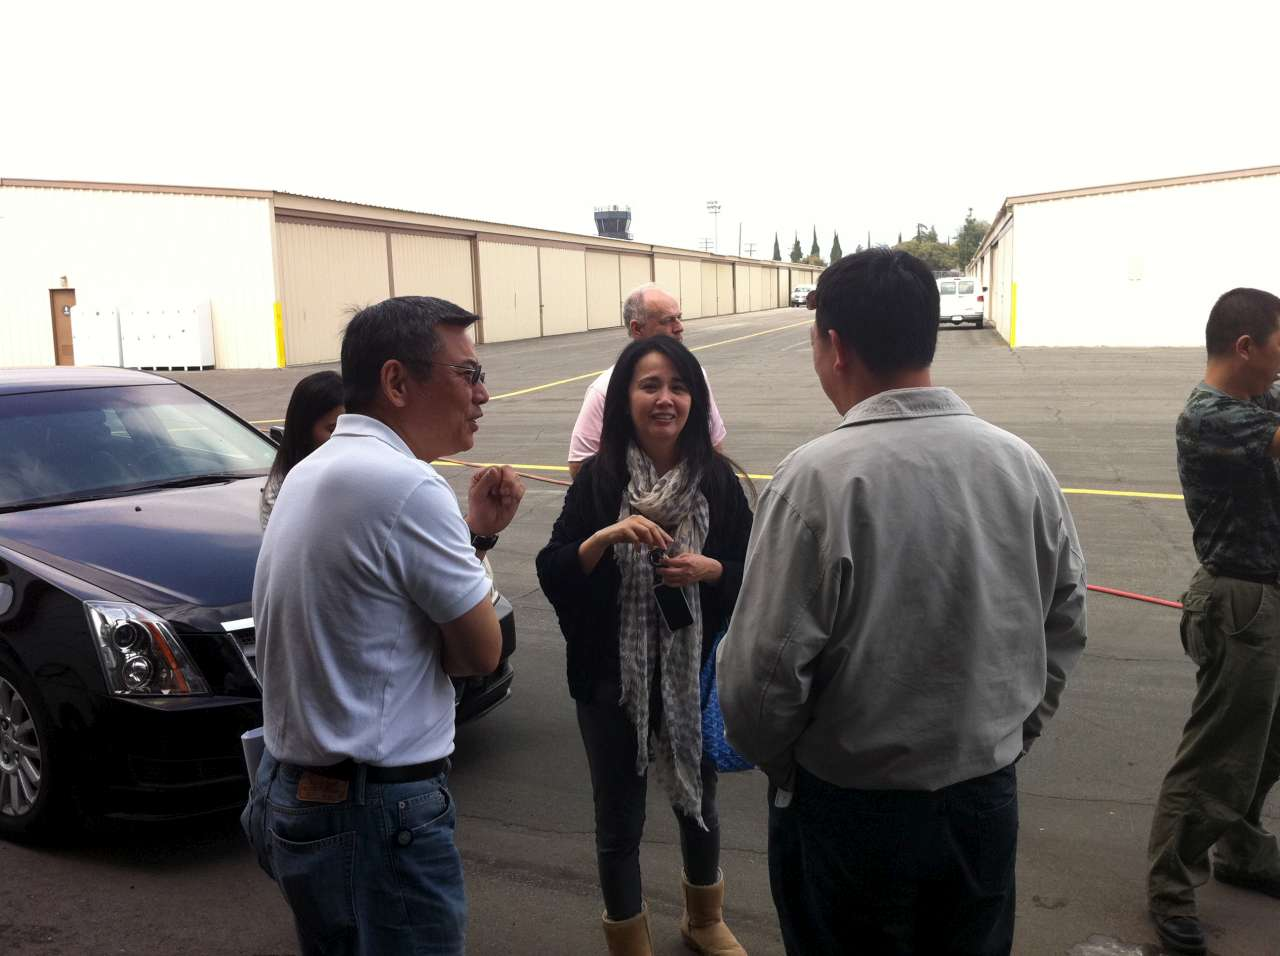 Meet with El Monte hangers owner Cindy Chiang